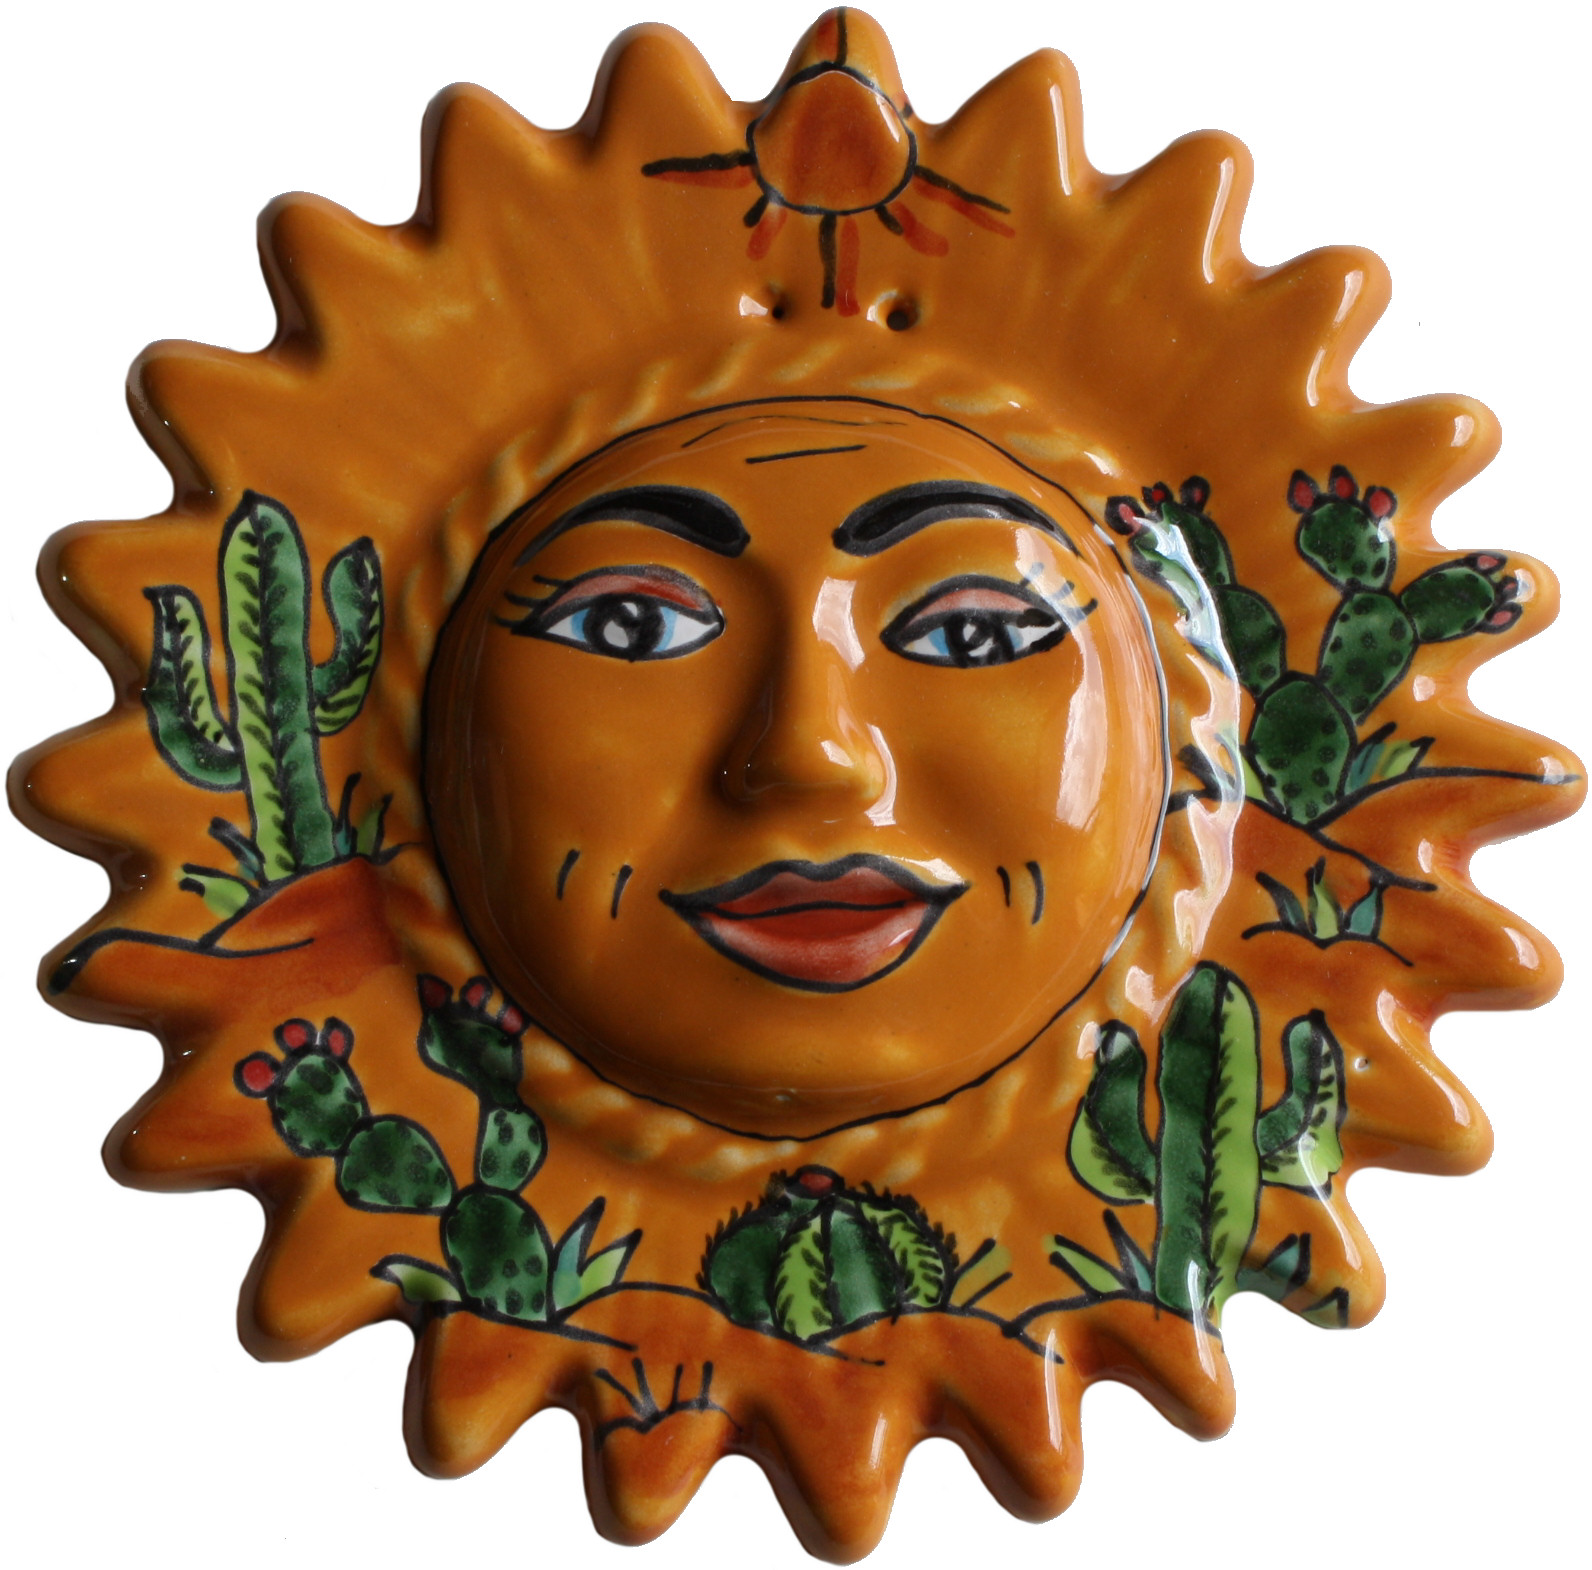 Small-Sized Desert Talavera Ceramic Sun Face